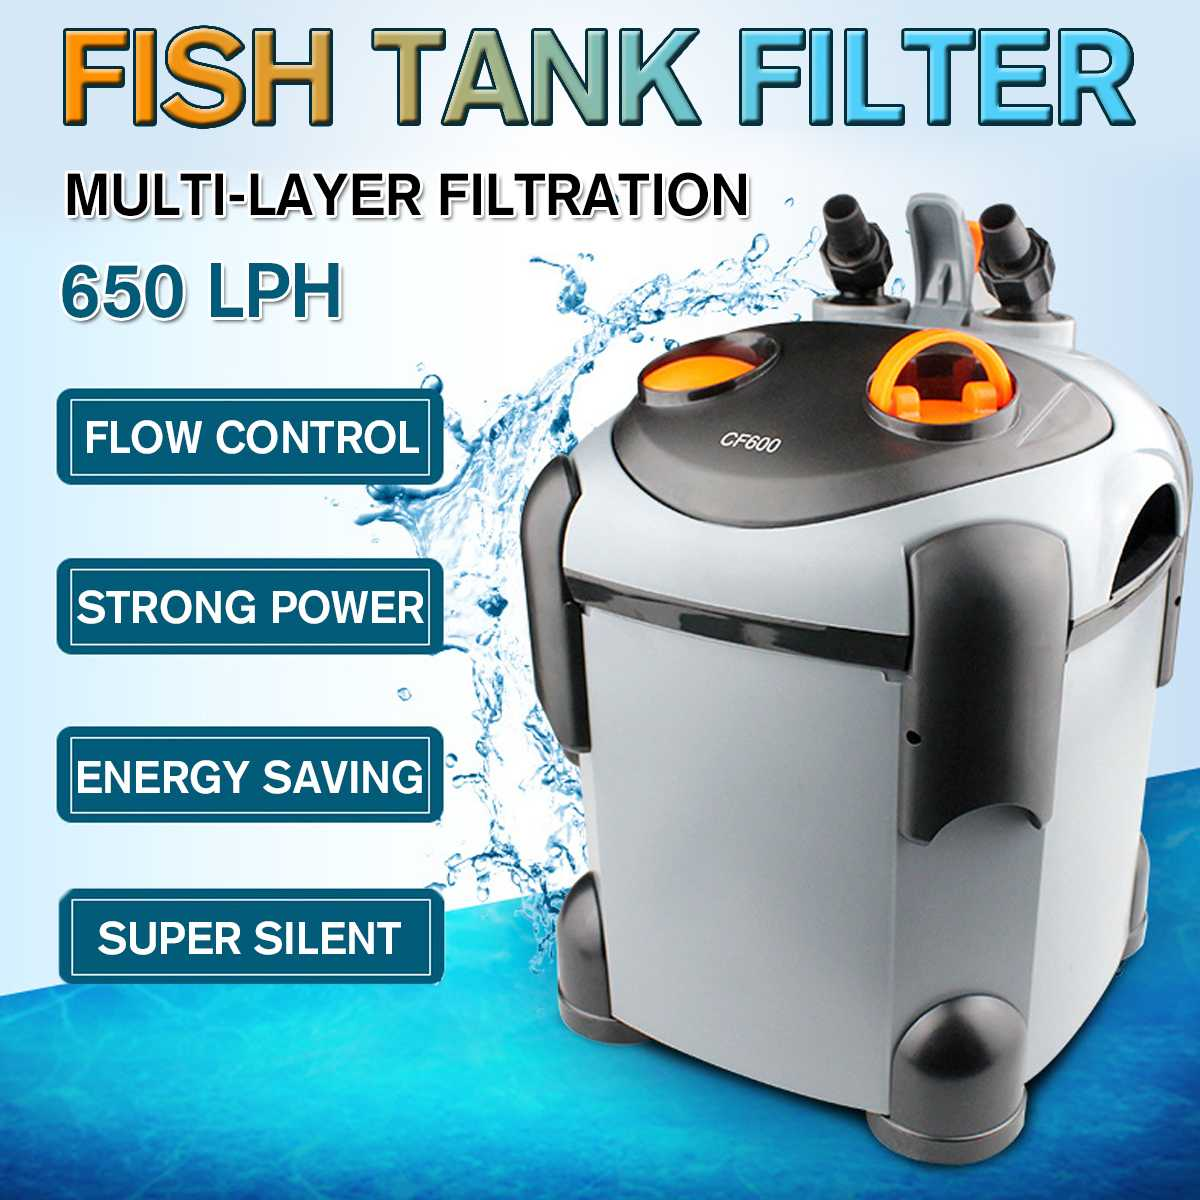 9.3W 650LPH Aquarium External Fish Tank Canister Filter for Aqua Fish Tank Filtration with Intake Output Hose Pet Supplies image